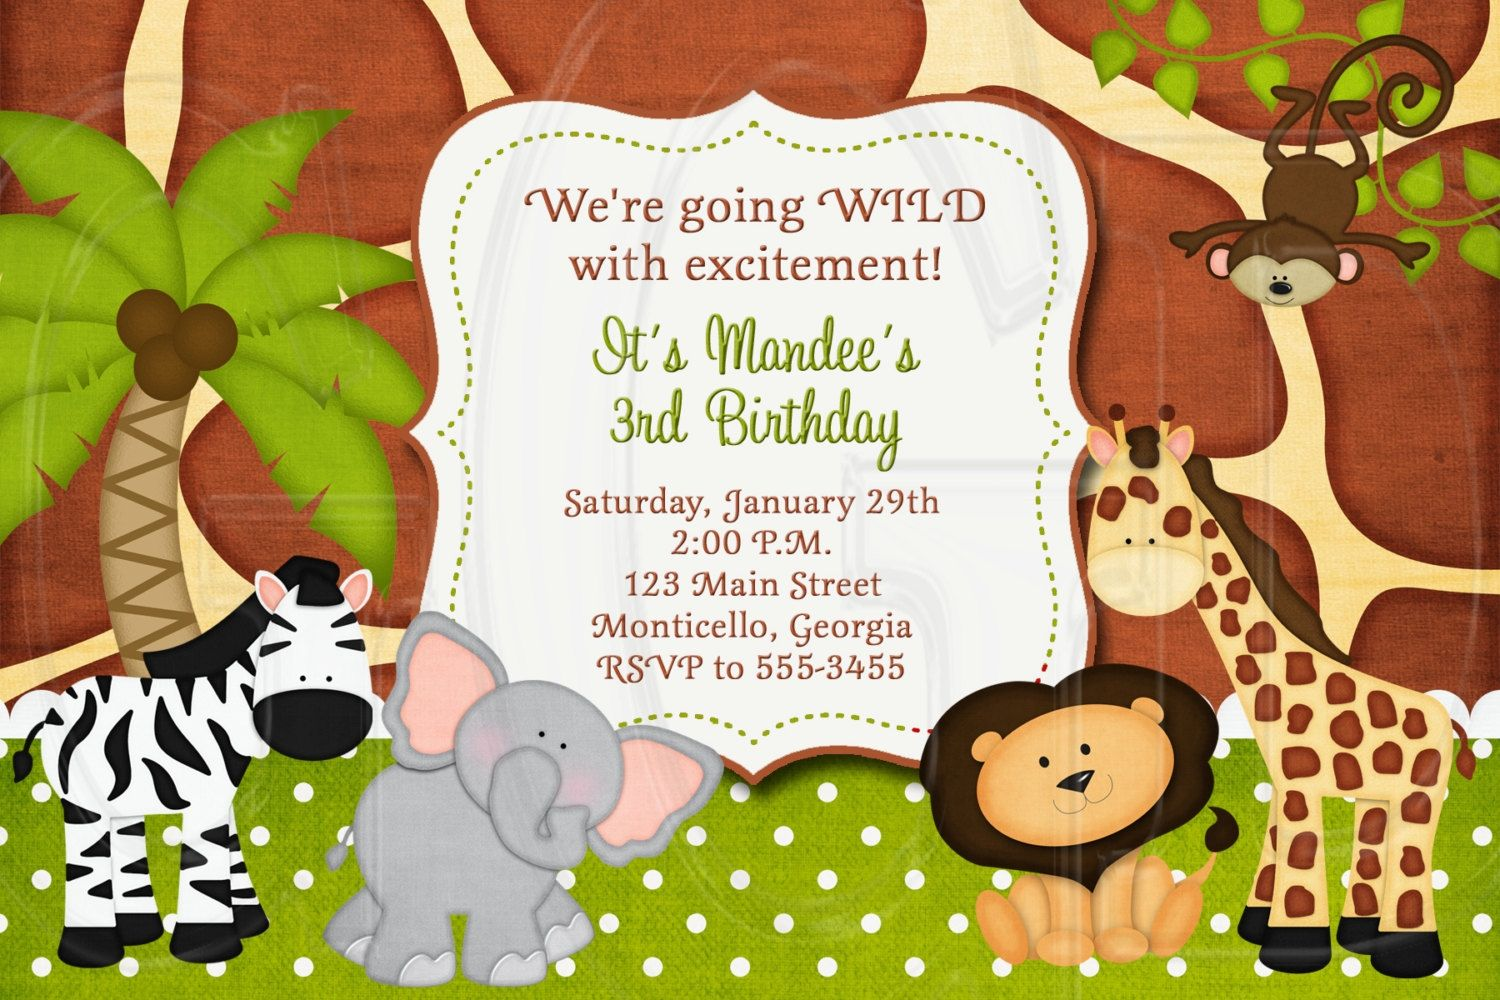 Zoo Party Invitation Template Free The Latest Trend In Zoo Party